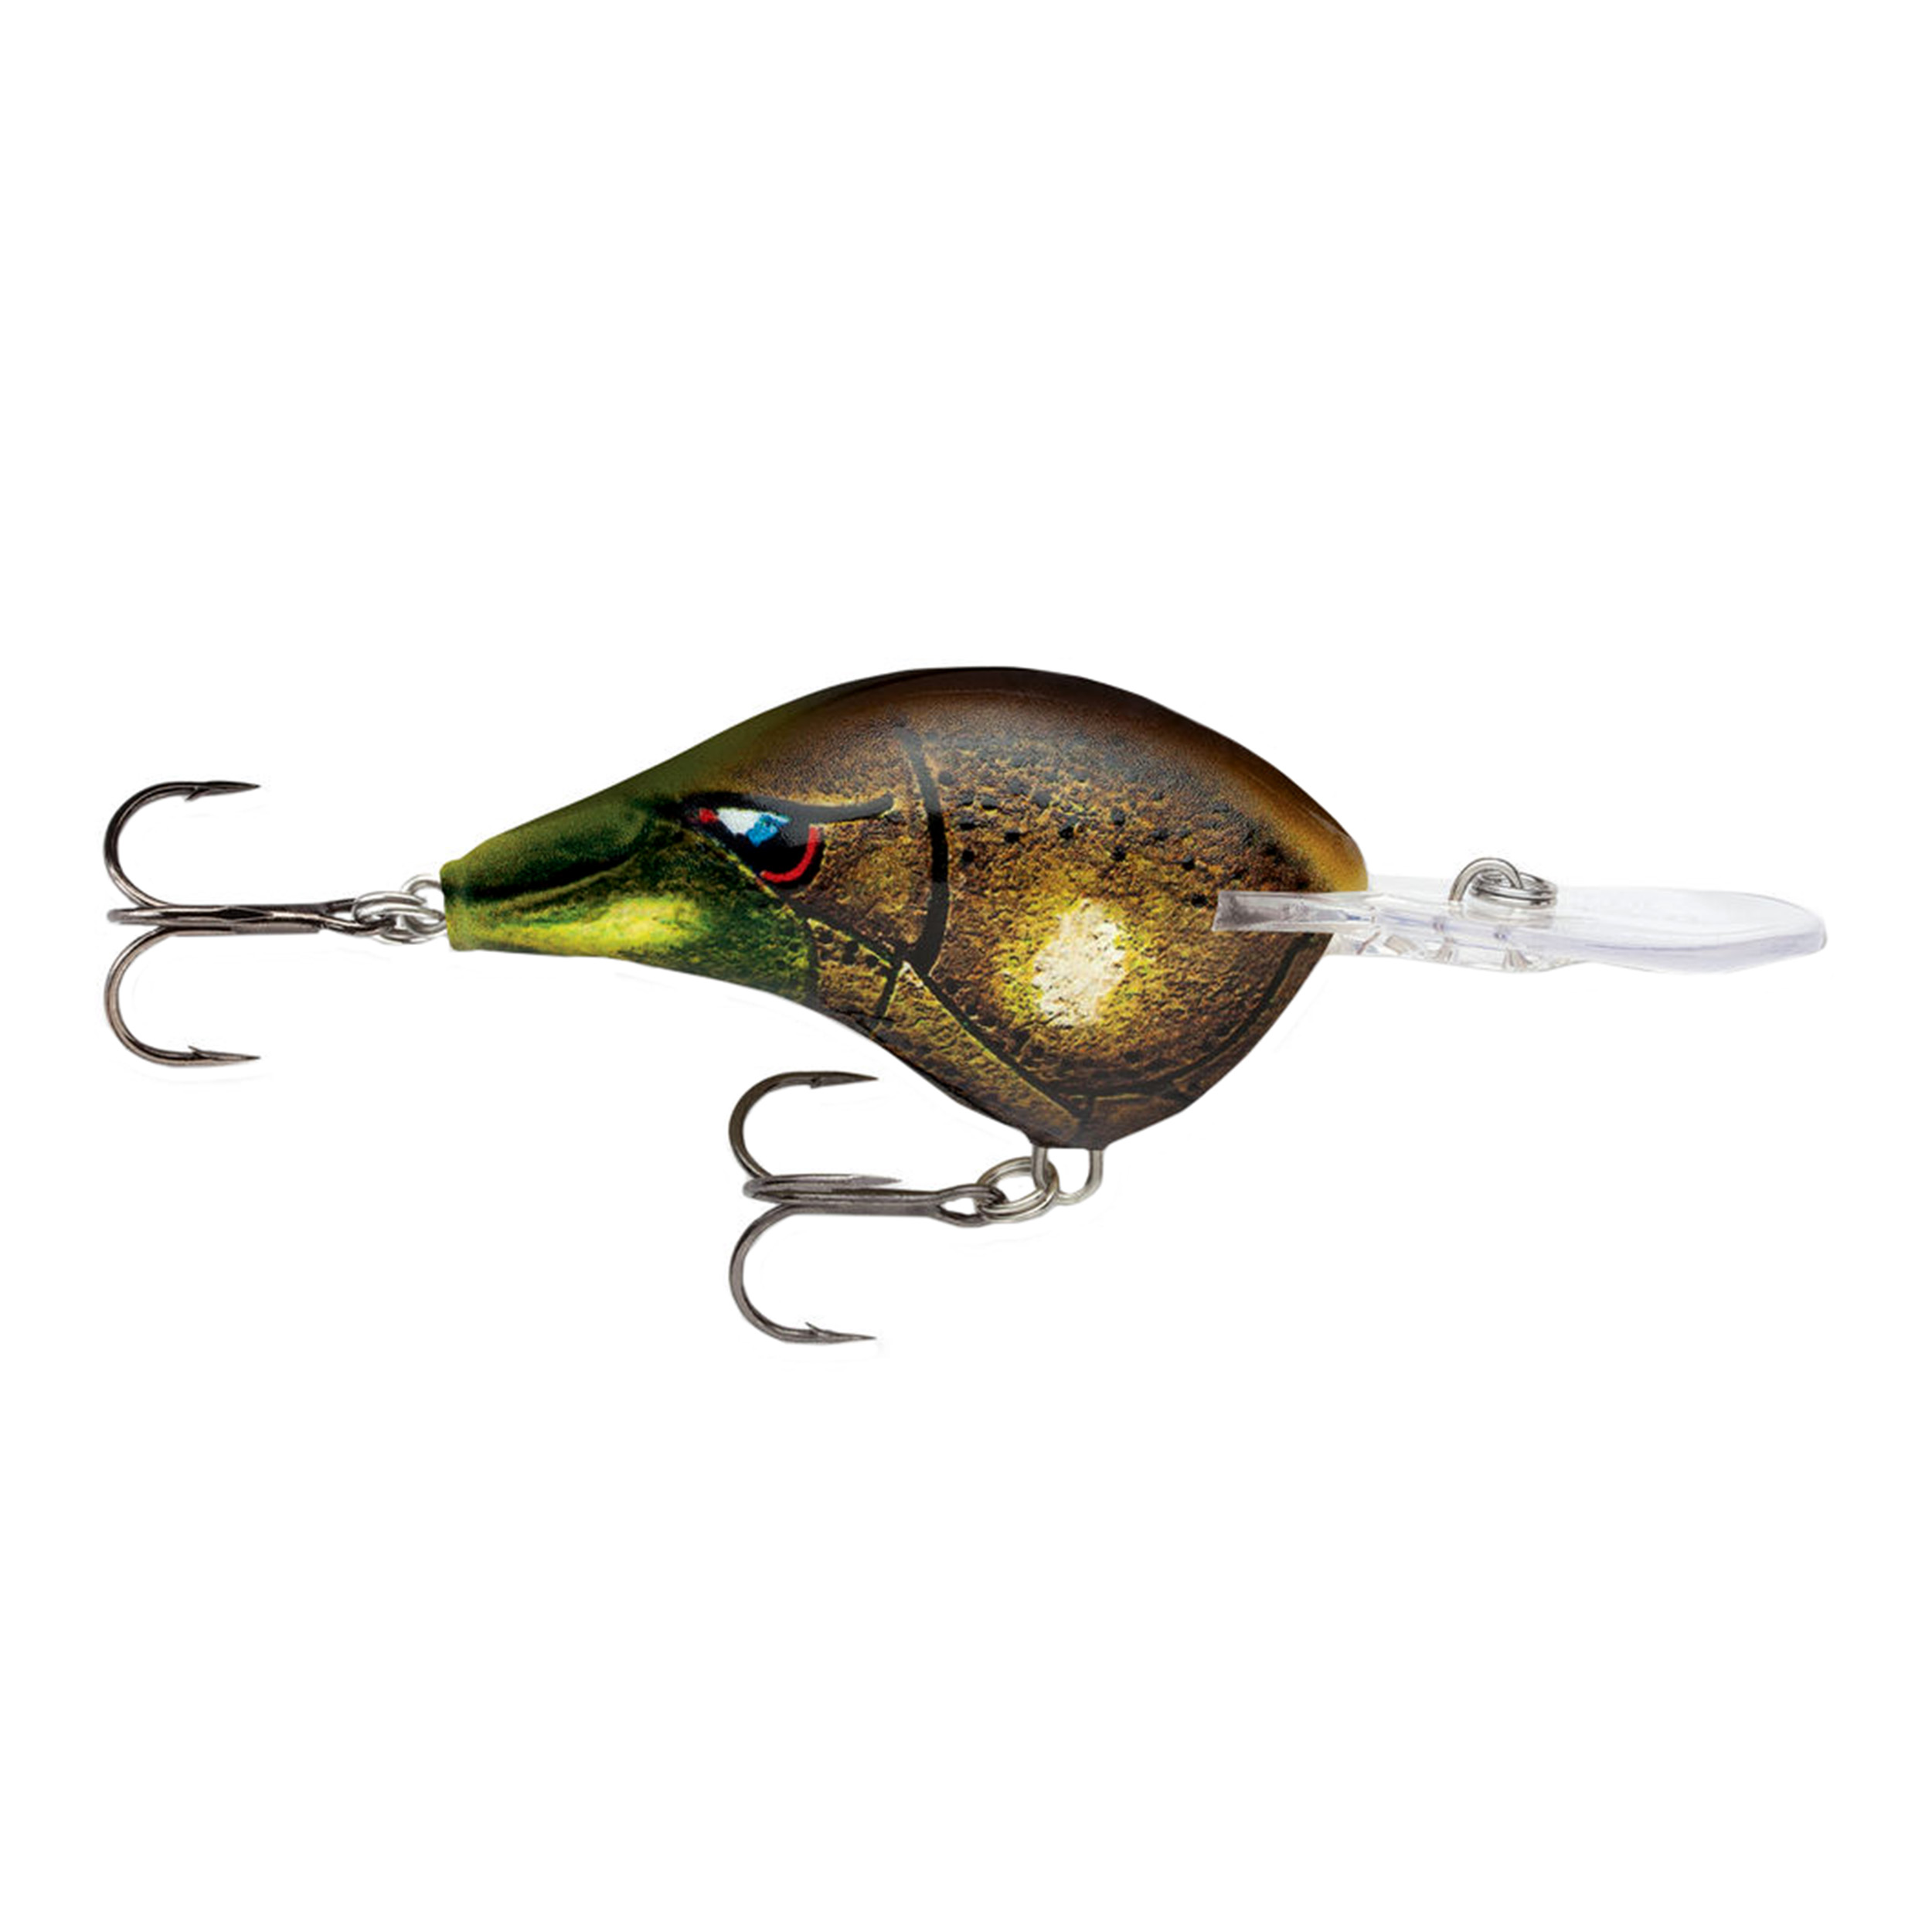 "Rapala Dives-To Series Custom Ink Lure Size 06, 2"" Length, 6' Depth, 2 Number 5 Treble Hooks, Mossy, Per 1 by Rapala"